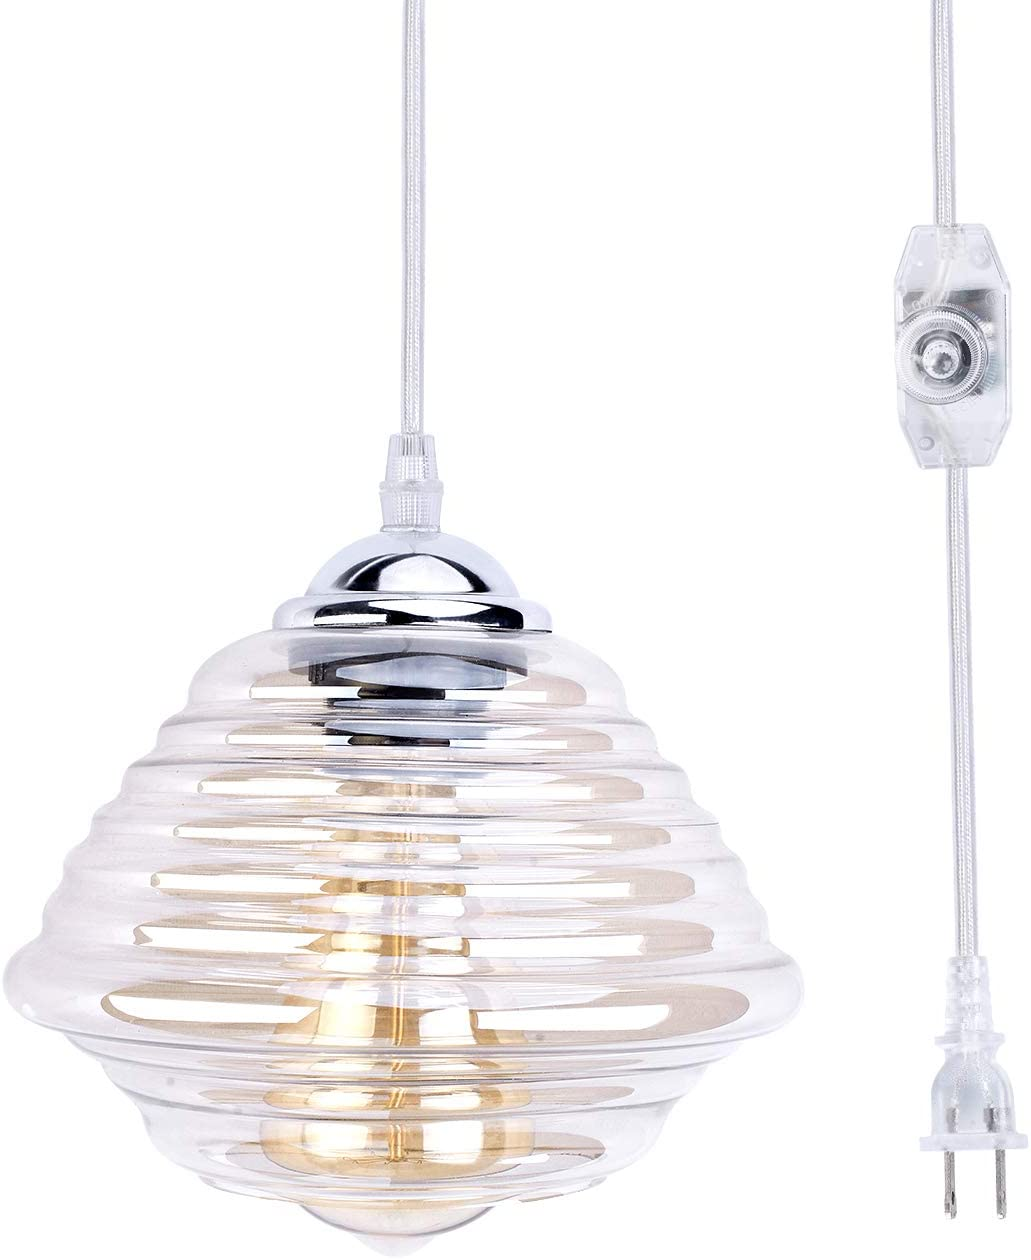 Stepeak Modern Glass Pendant Light,Transparent Swag Lamp with on/Off Dimmer Switch and 16.4' Plug in Cordand,Hanging Light for Bedroom Kitchen Dinning Room